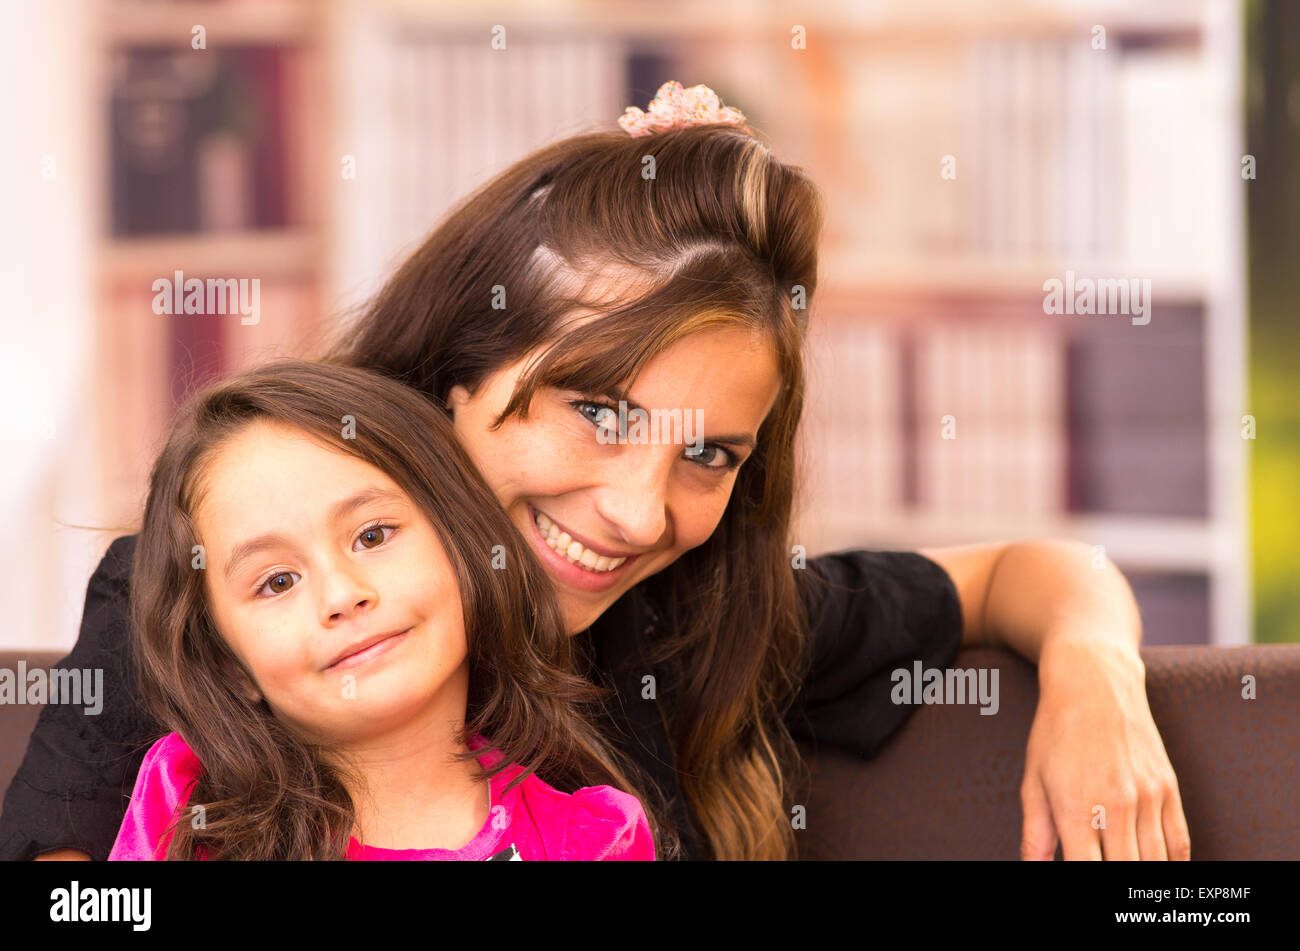 Mom and daughter posing happily indoors with heads tilted smiling - Stock Image